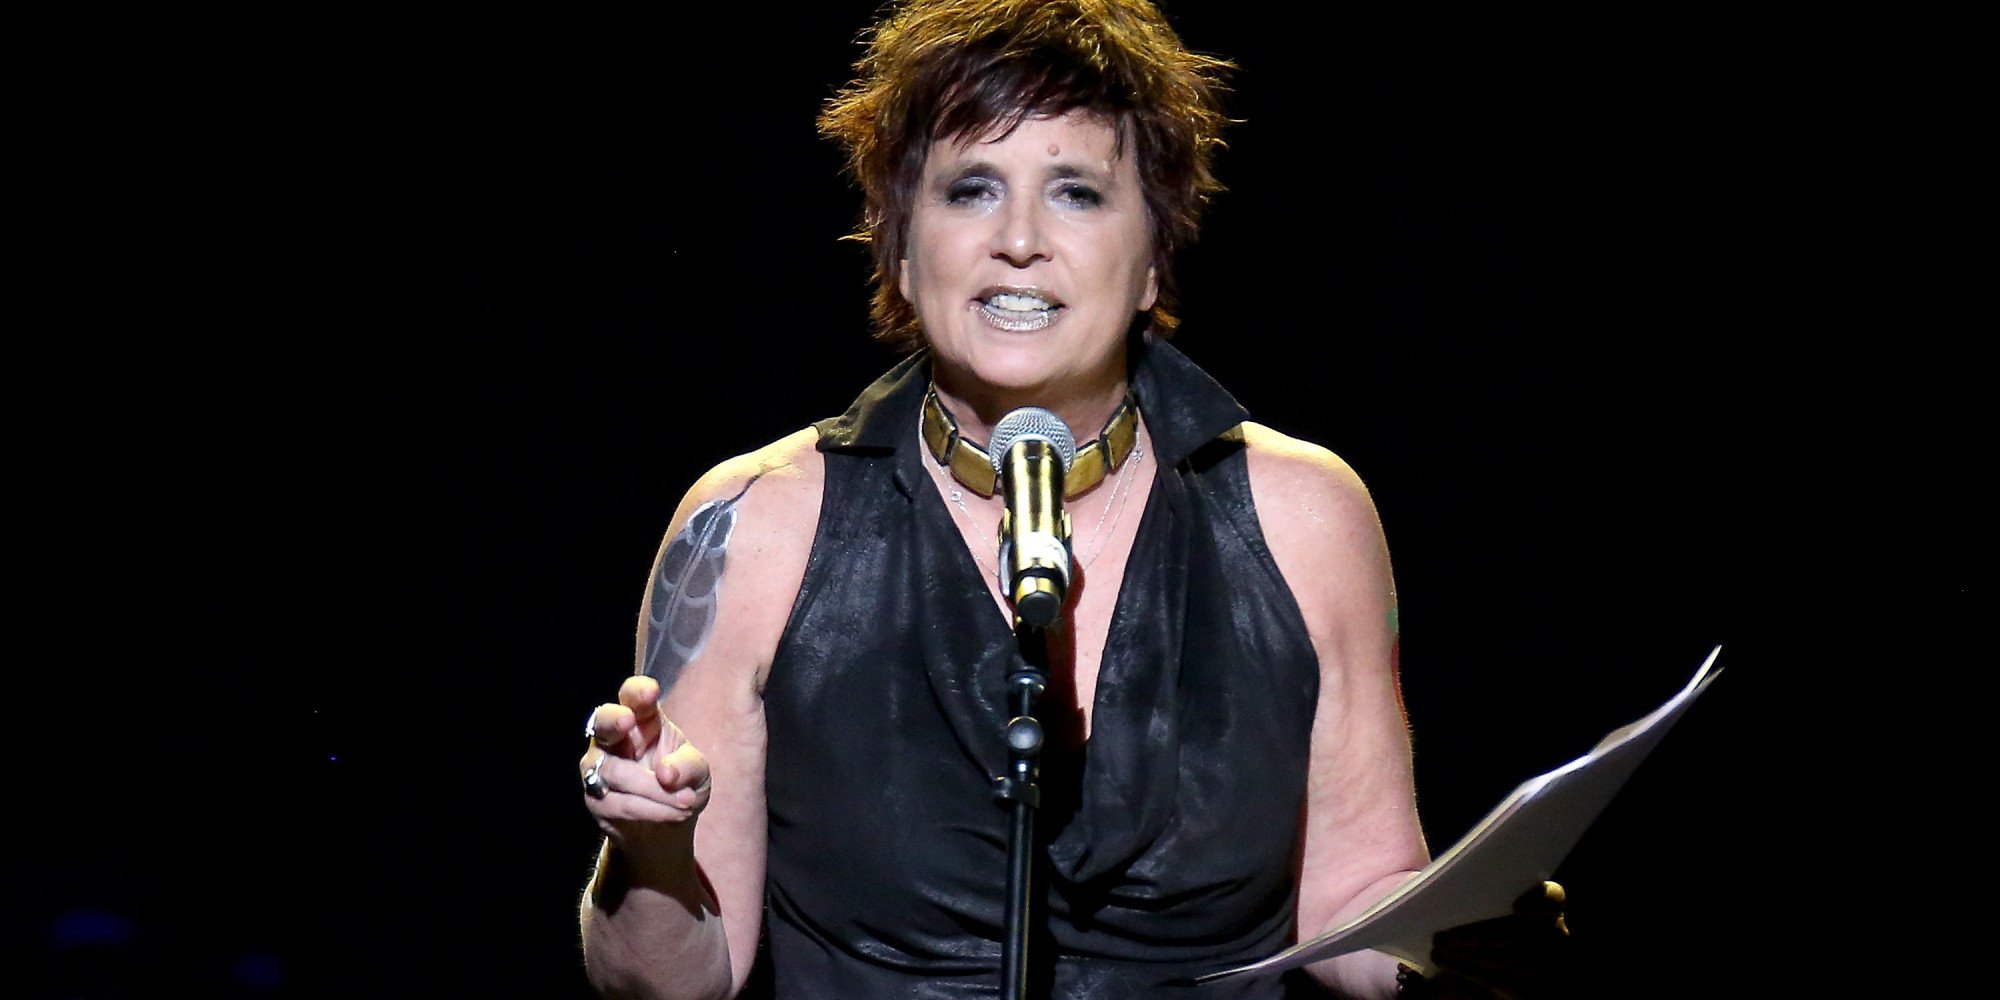 NEW YORK, NY - FEBRUARY 07: Actress and V-Day Founder Eve Ensler speaks onstage at the 3rd Annual One Billion Rising: REVOLUTION at Hammerstein Ballroom on February 7, 2015 in New York City. (Photo by Paul Zimmerman/WireImage for V-Day)